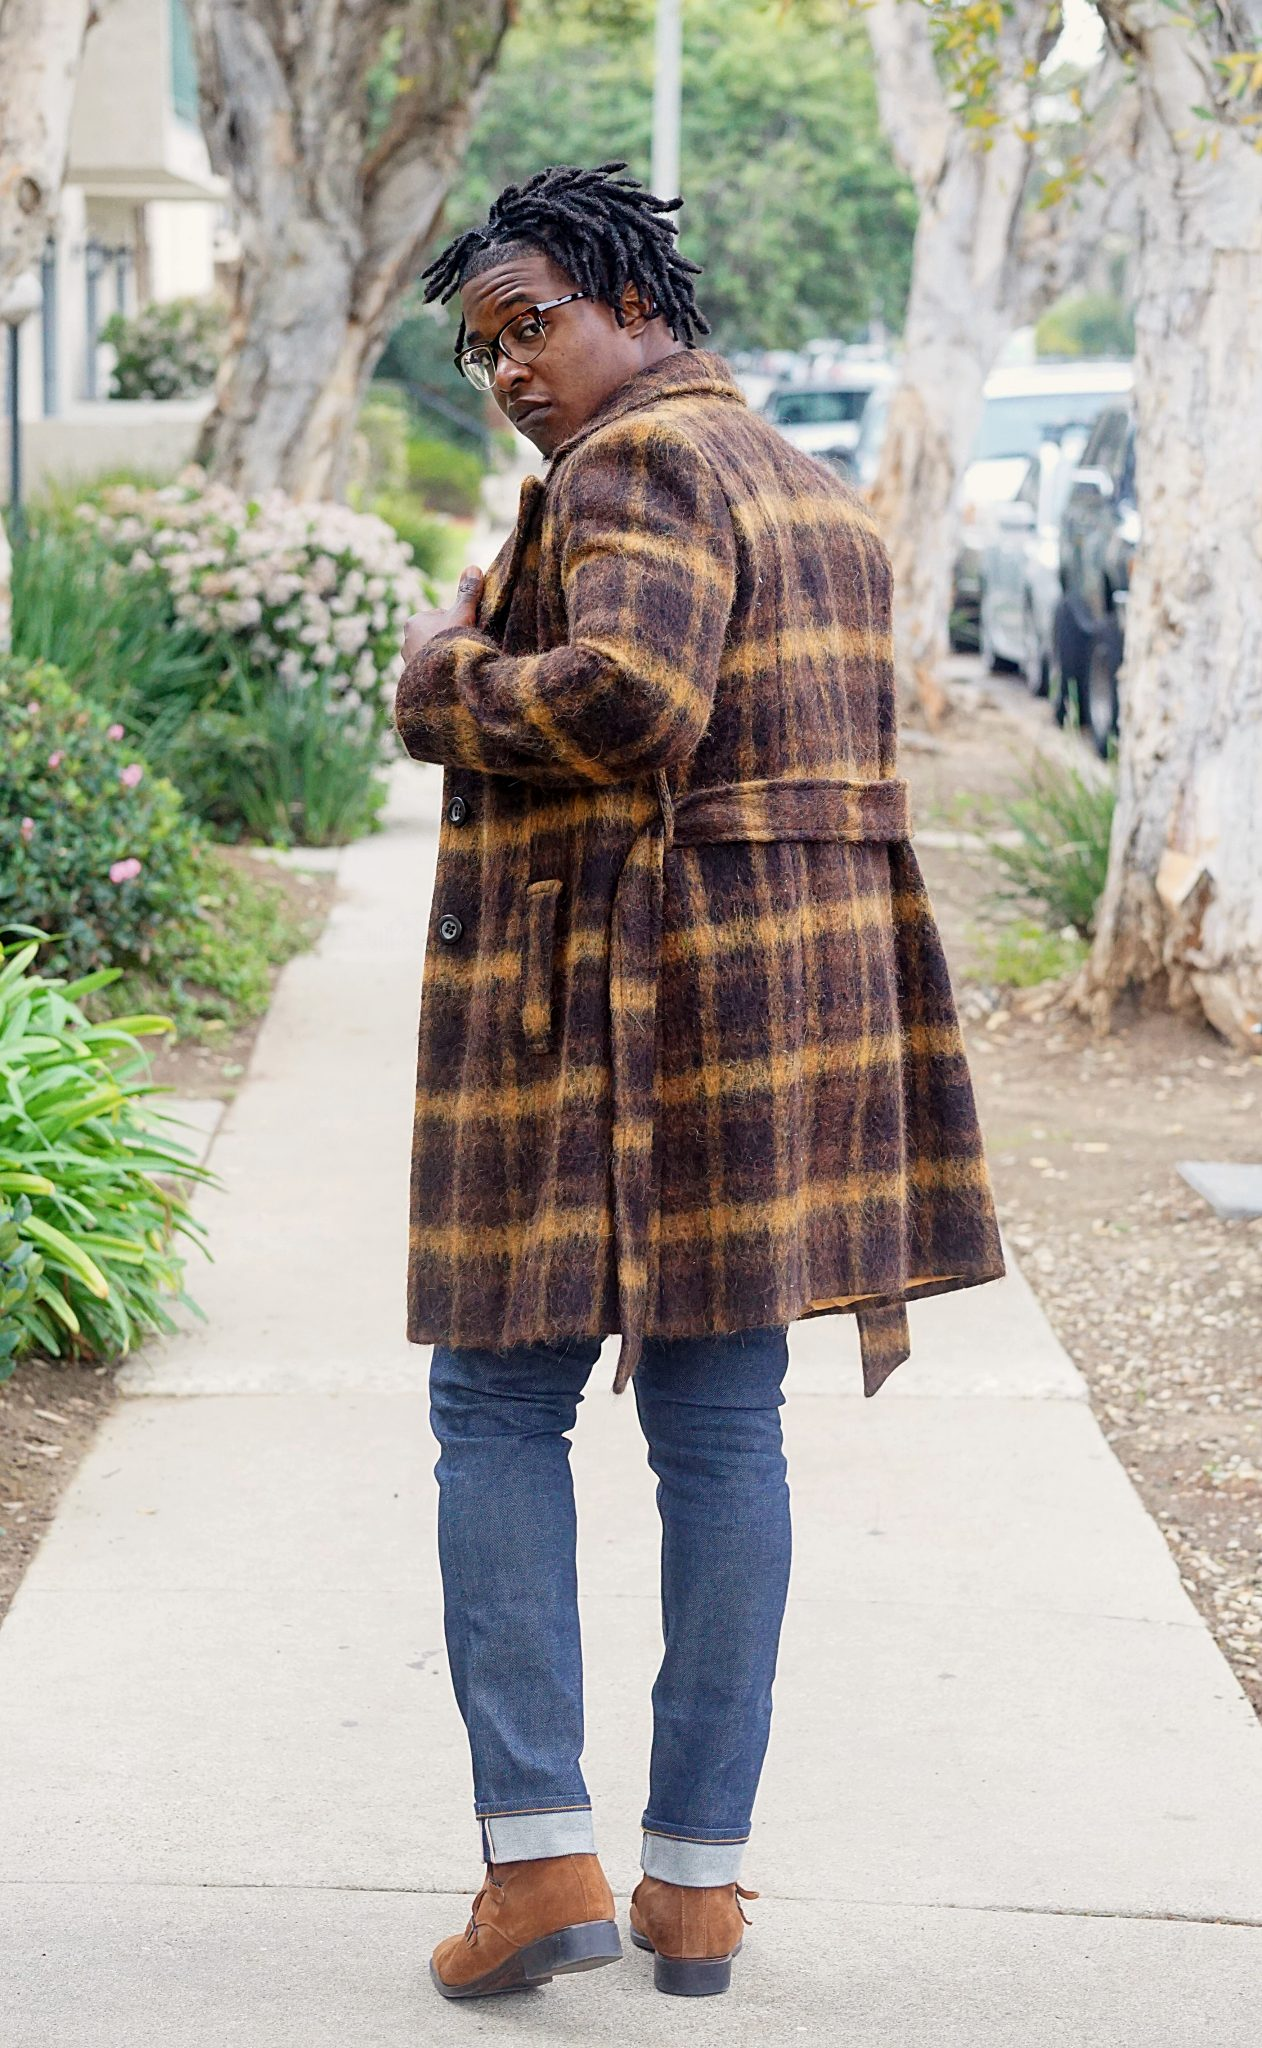 dapper-advisor-wearing-brown-shirt-statement coat-giovane san martino-plaid-overcoat-alpaca -jack threads-selvedge denim jeans-zara suede boots-2